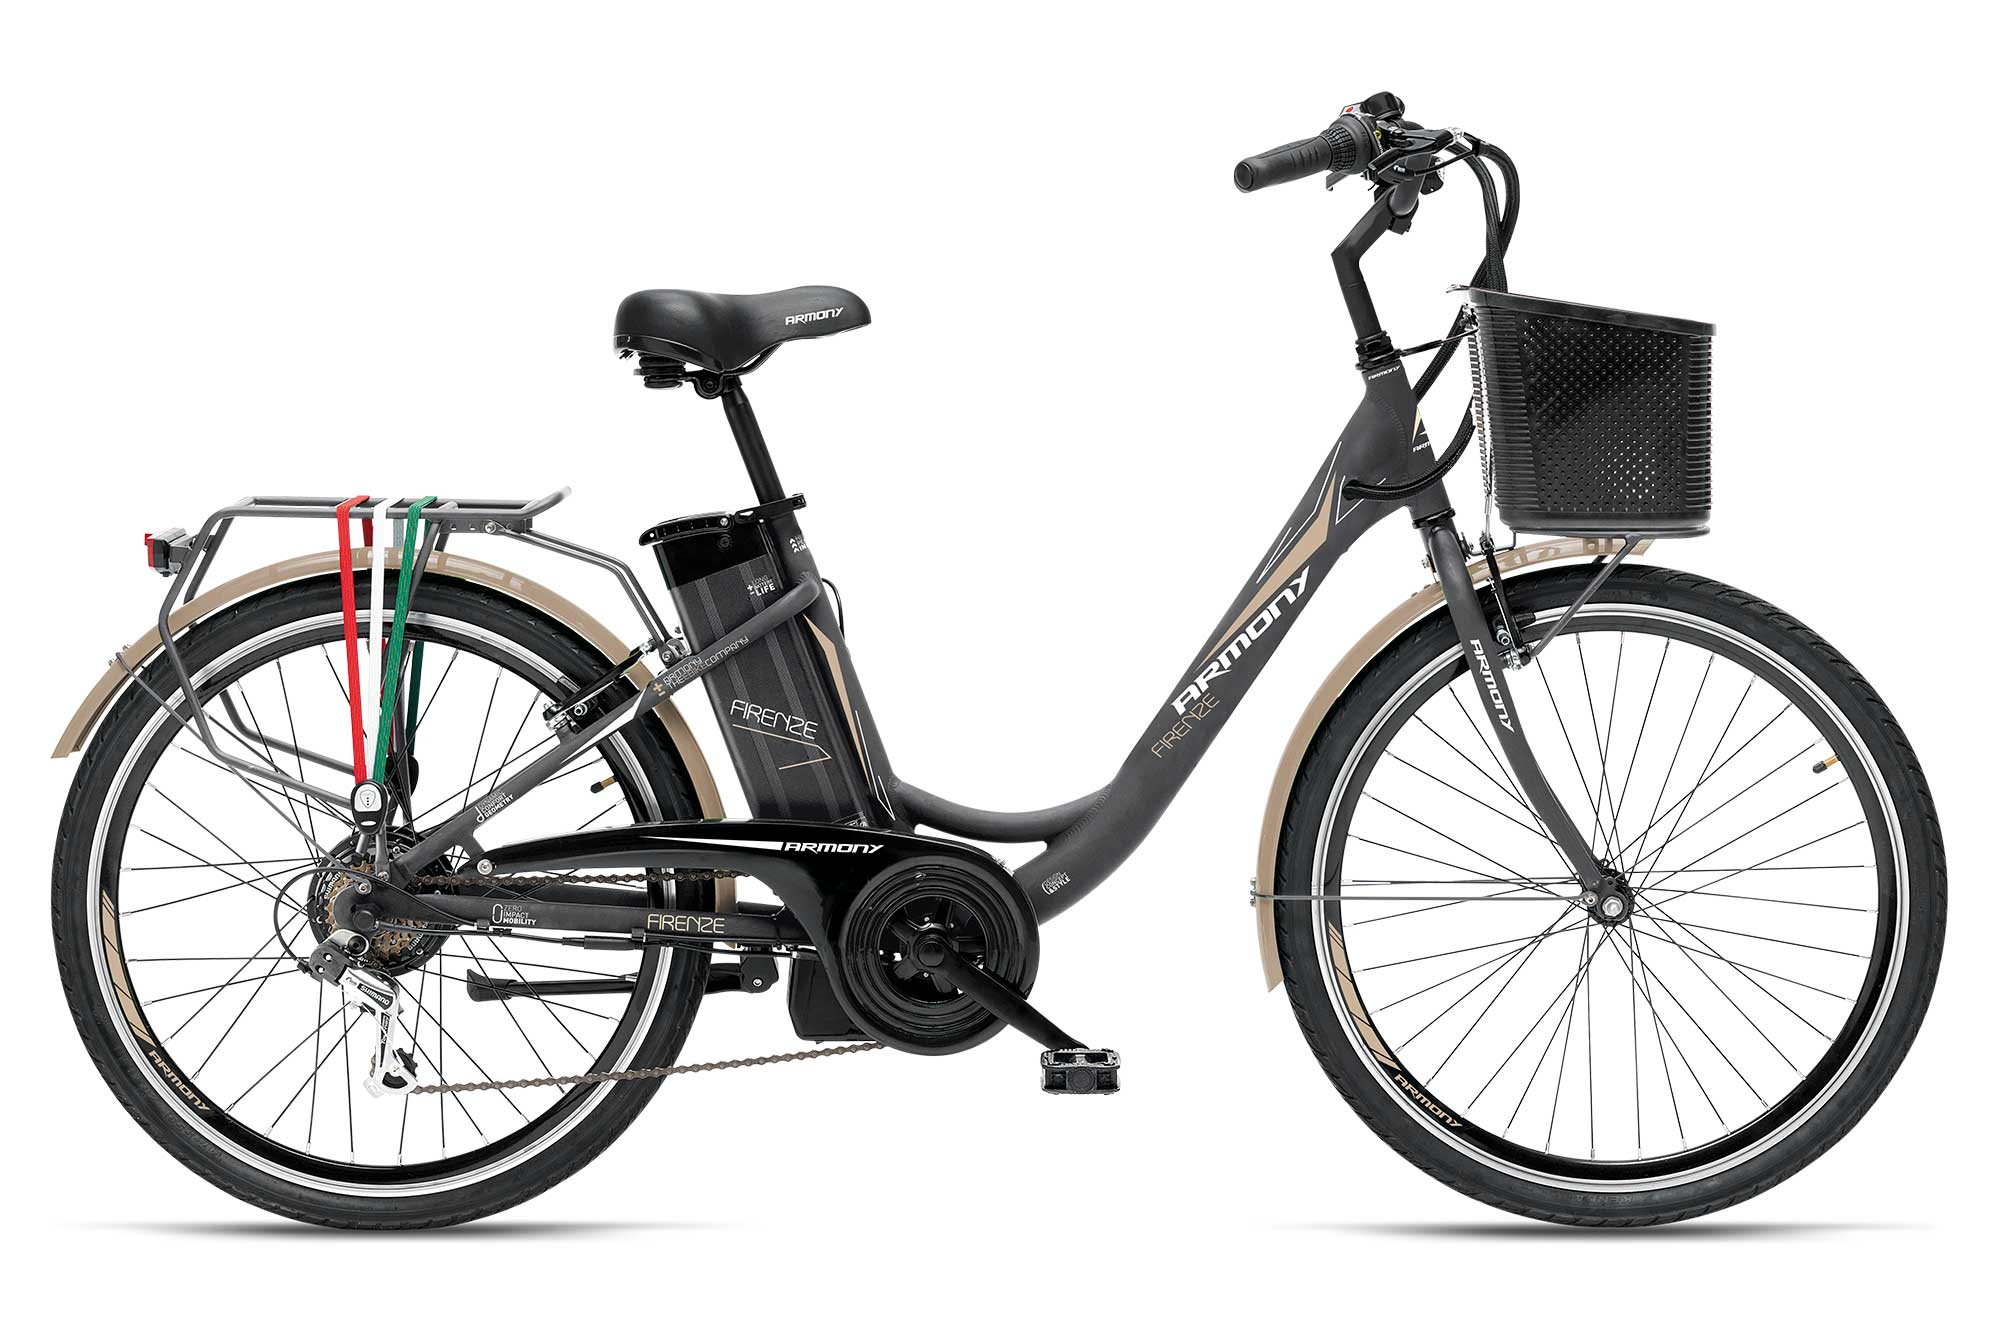 CITY BIKE - MODELLO FIRENZE - GRIGIA